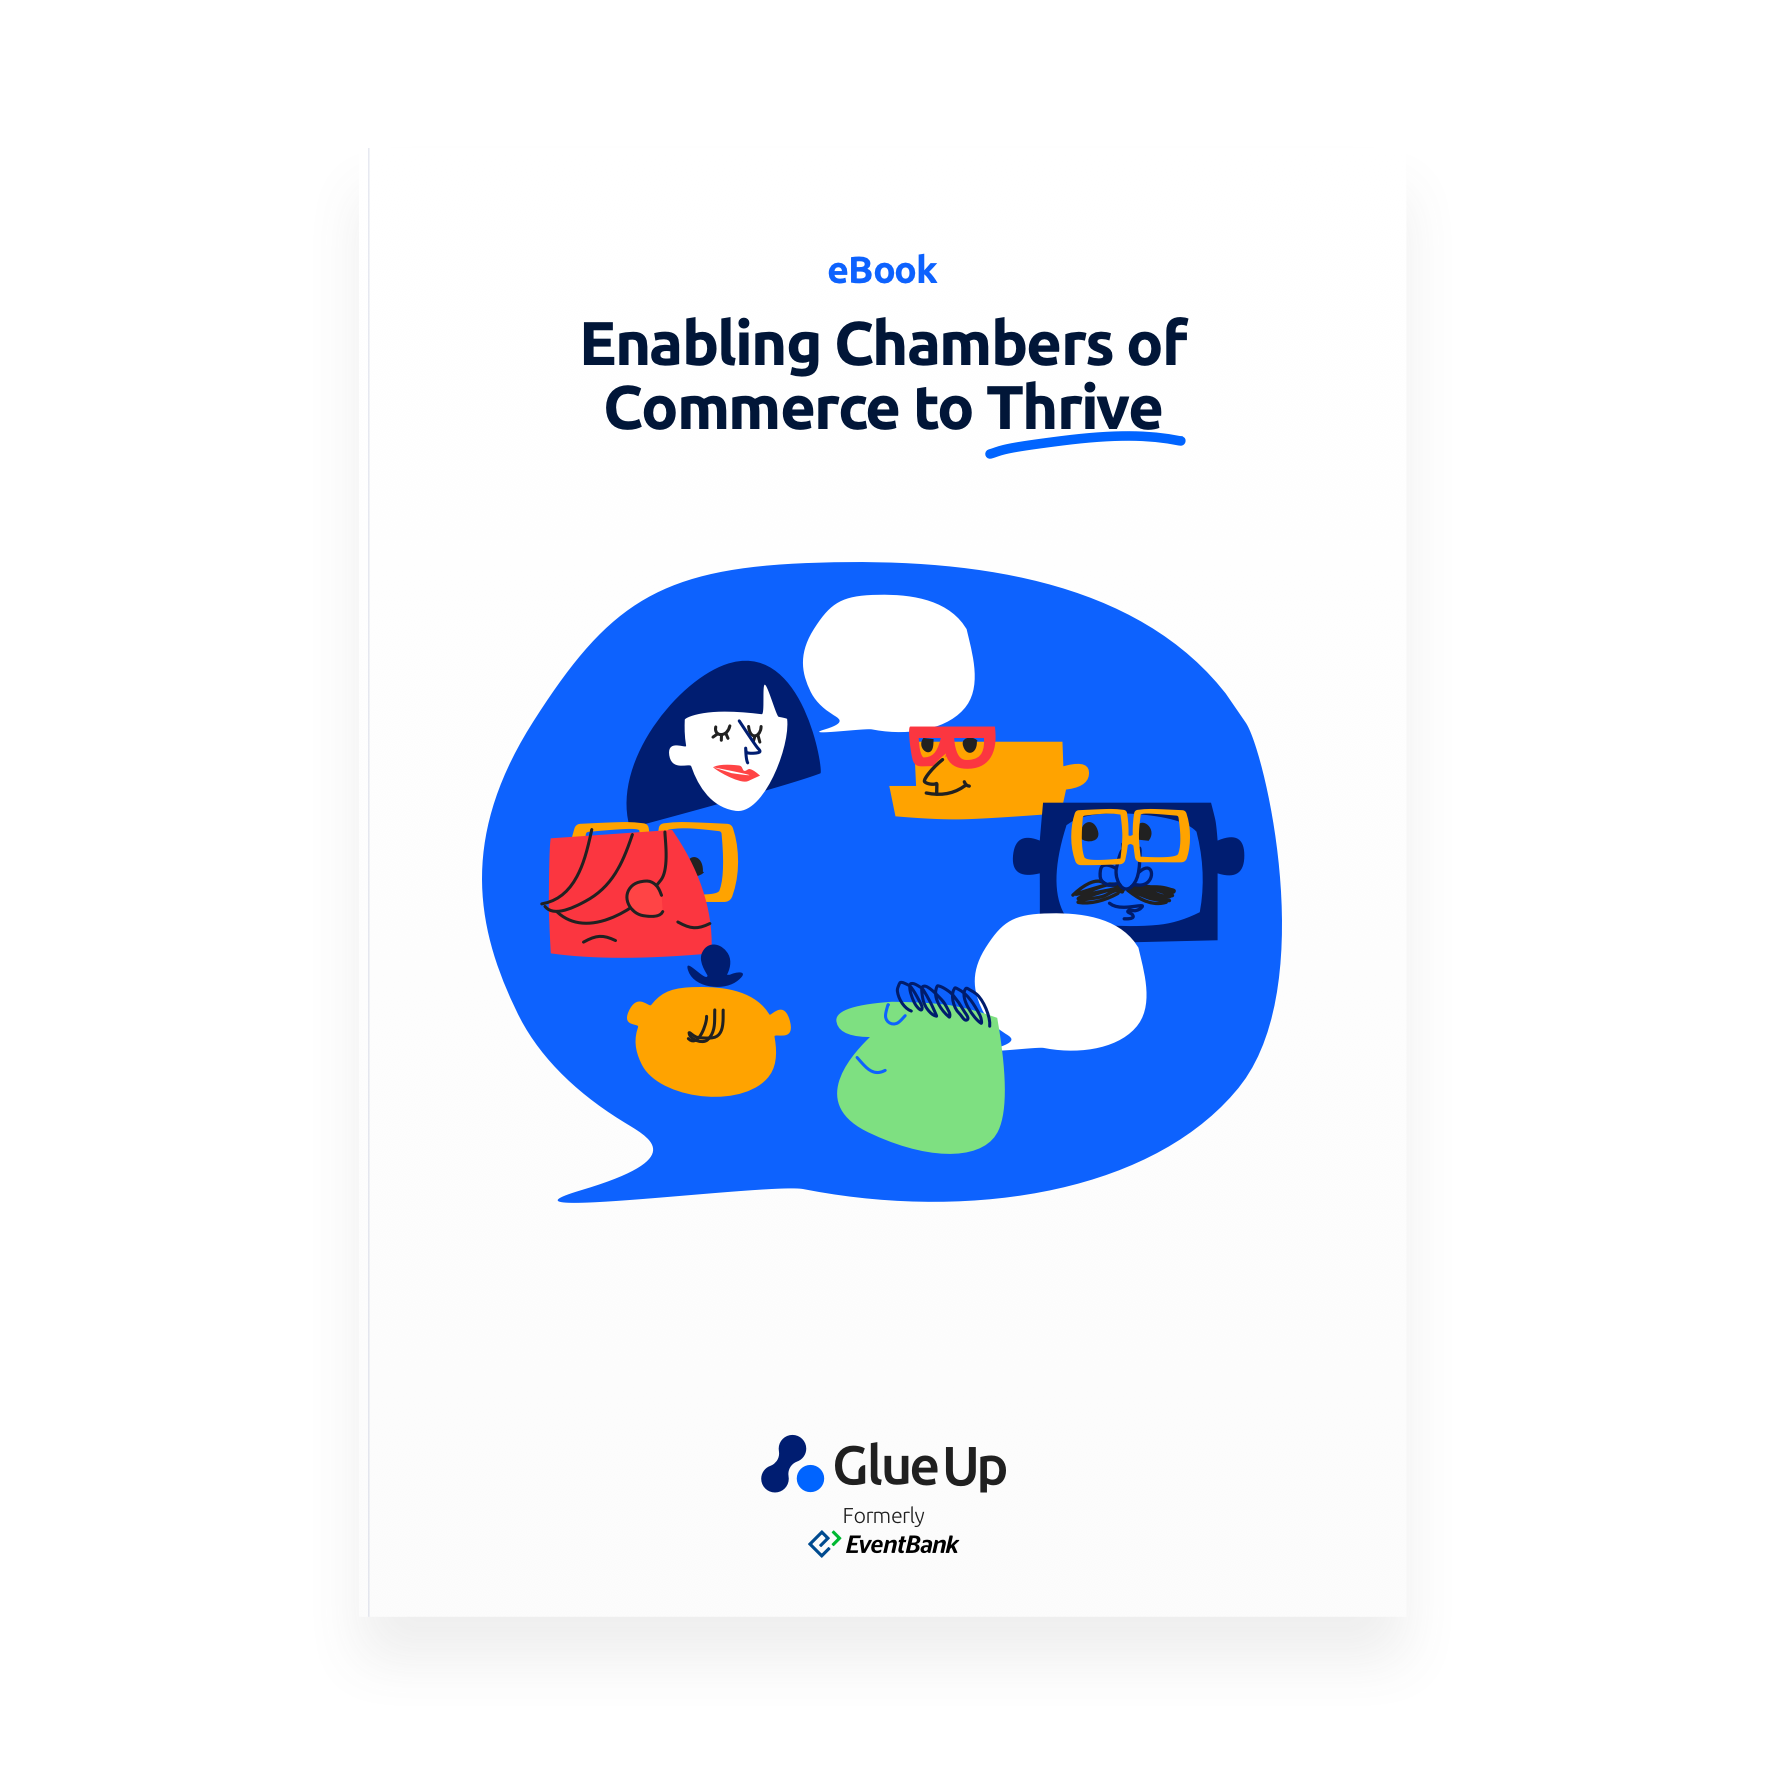 Enabling Chambers of Commerce to Thrive